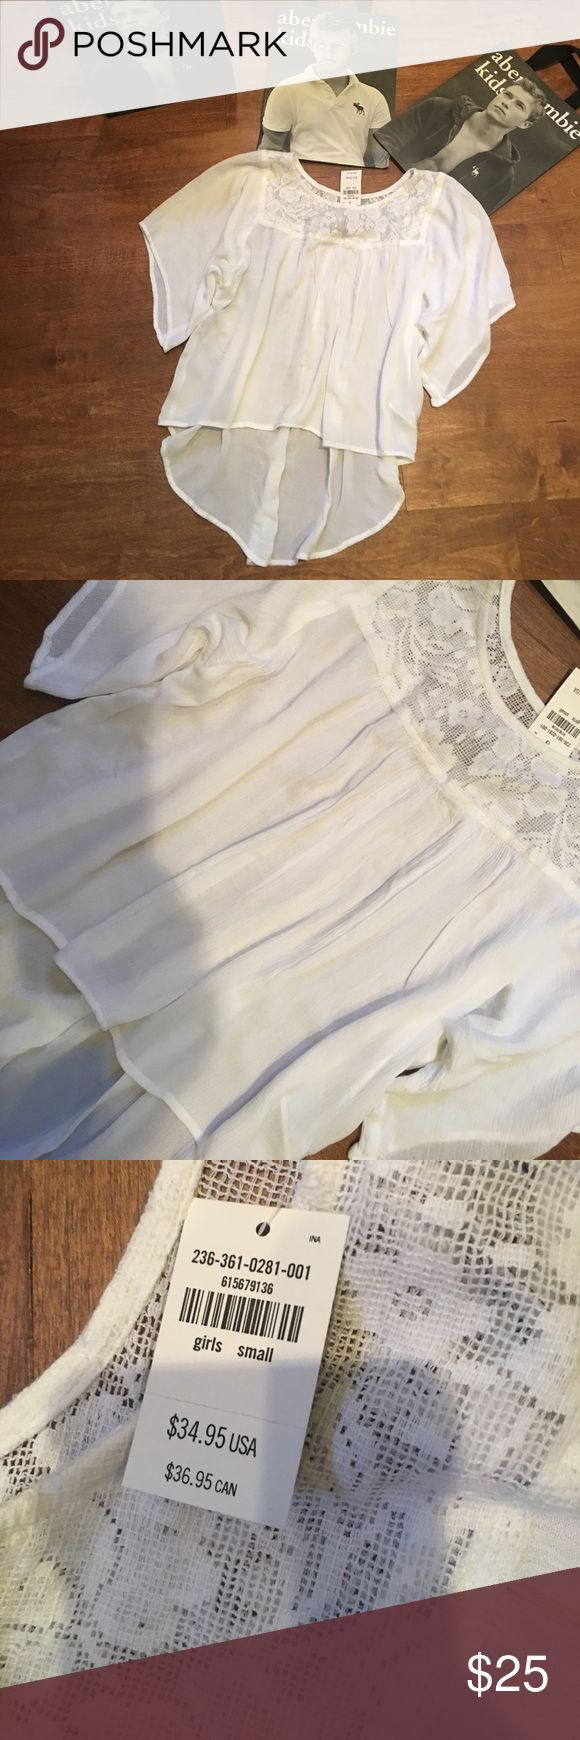 🤑SALE 👈NEW Abercrombie kids girls high-low NEW Abercrombie kids girls white high-low shirt with lace. Girls size Small 10 Retails for $34.95! This shirt is the cutest😀 Abercombie Kids Shirts & Tops Blouses